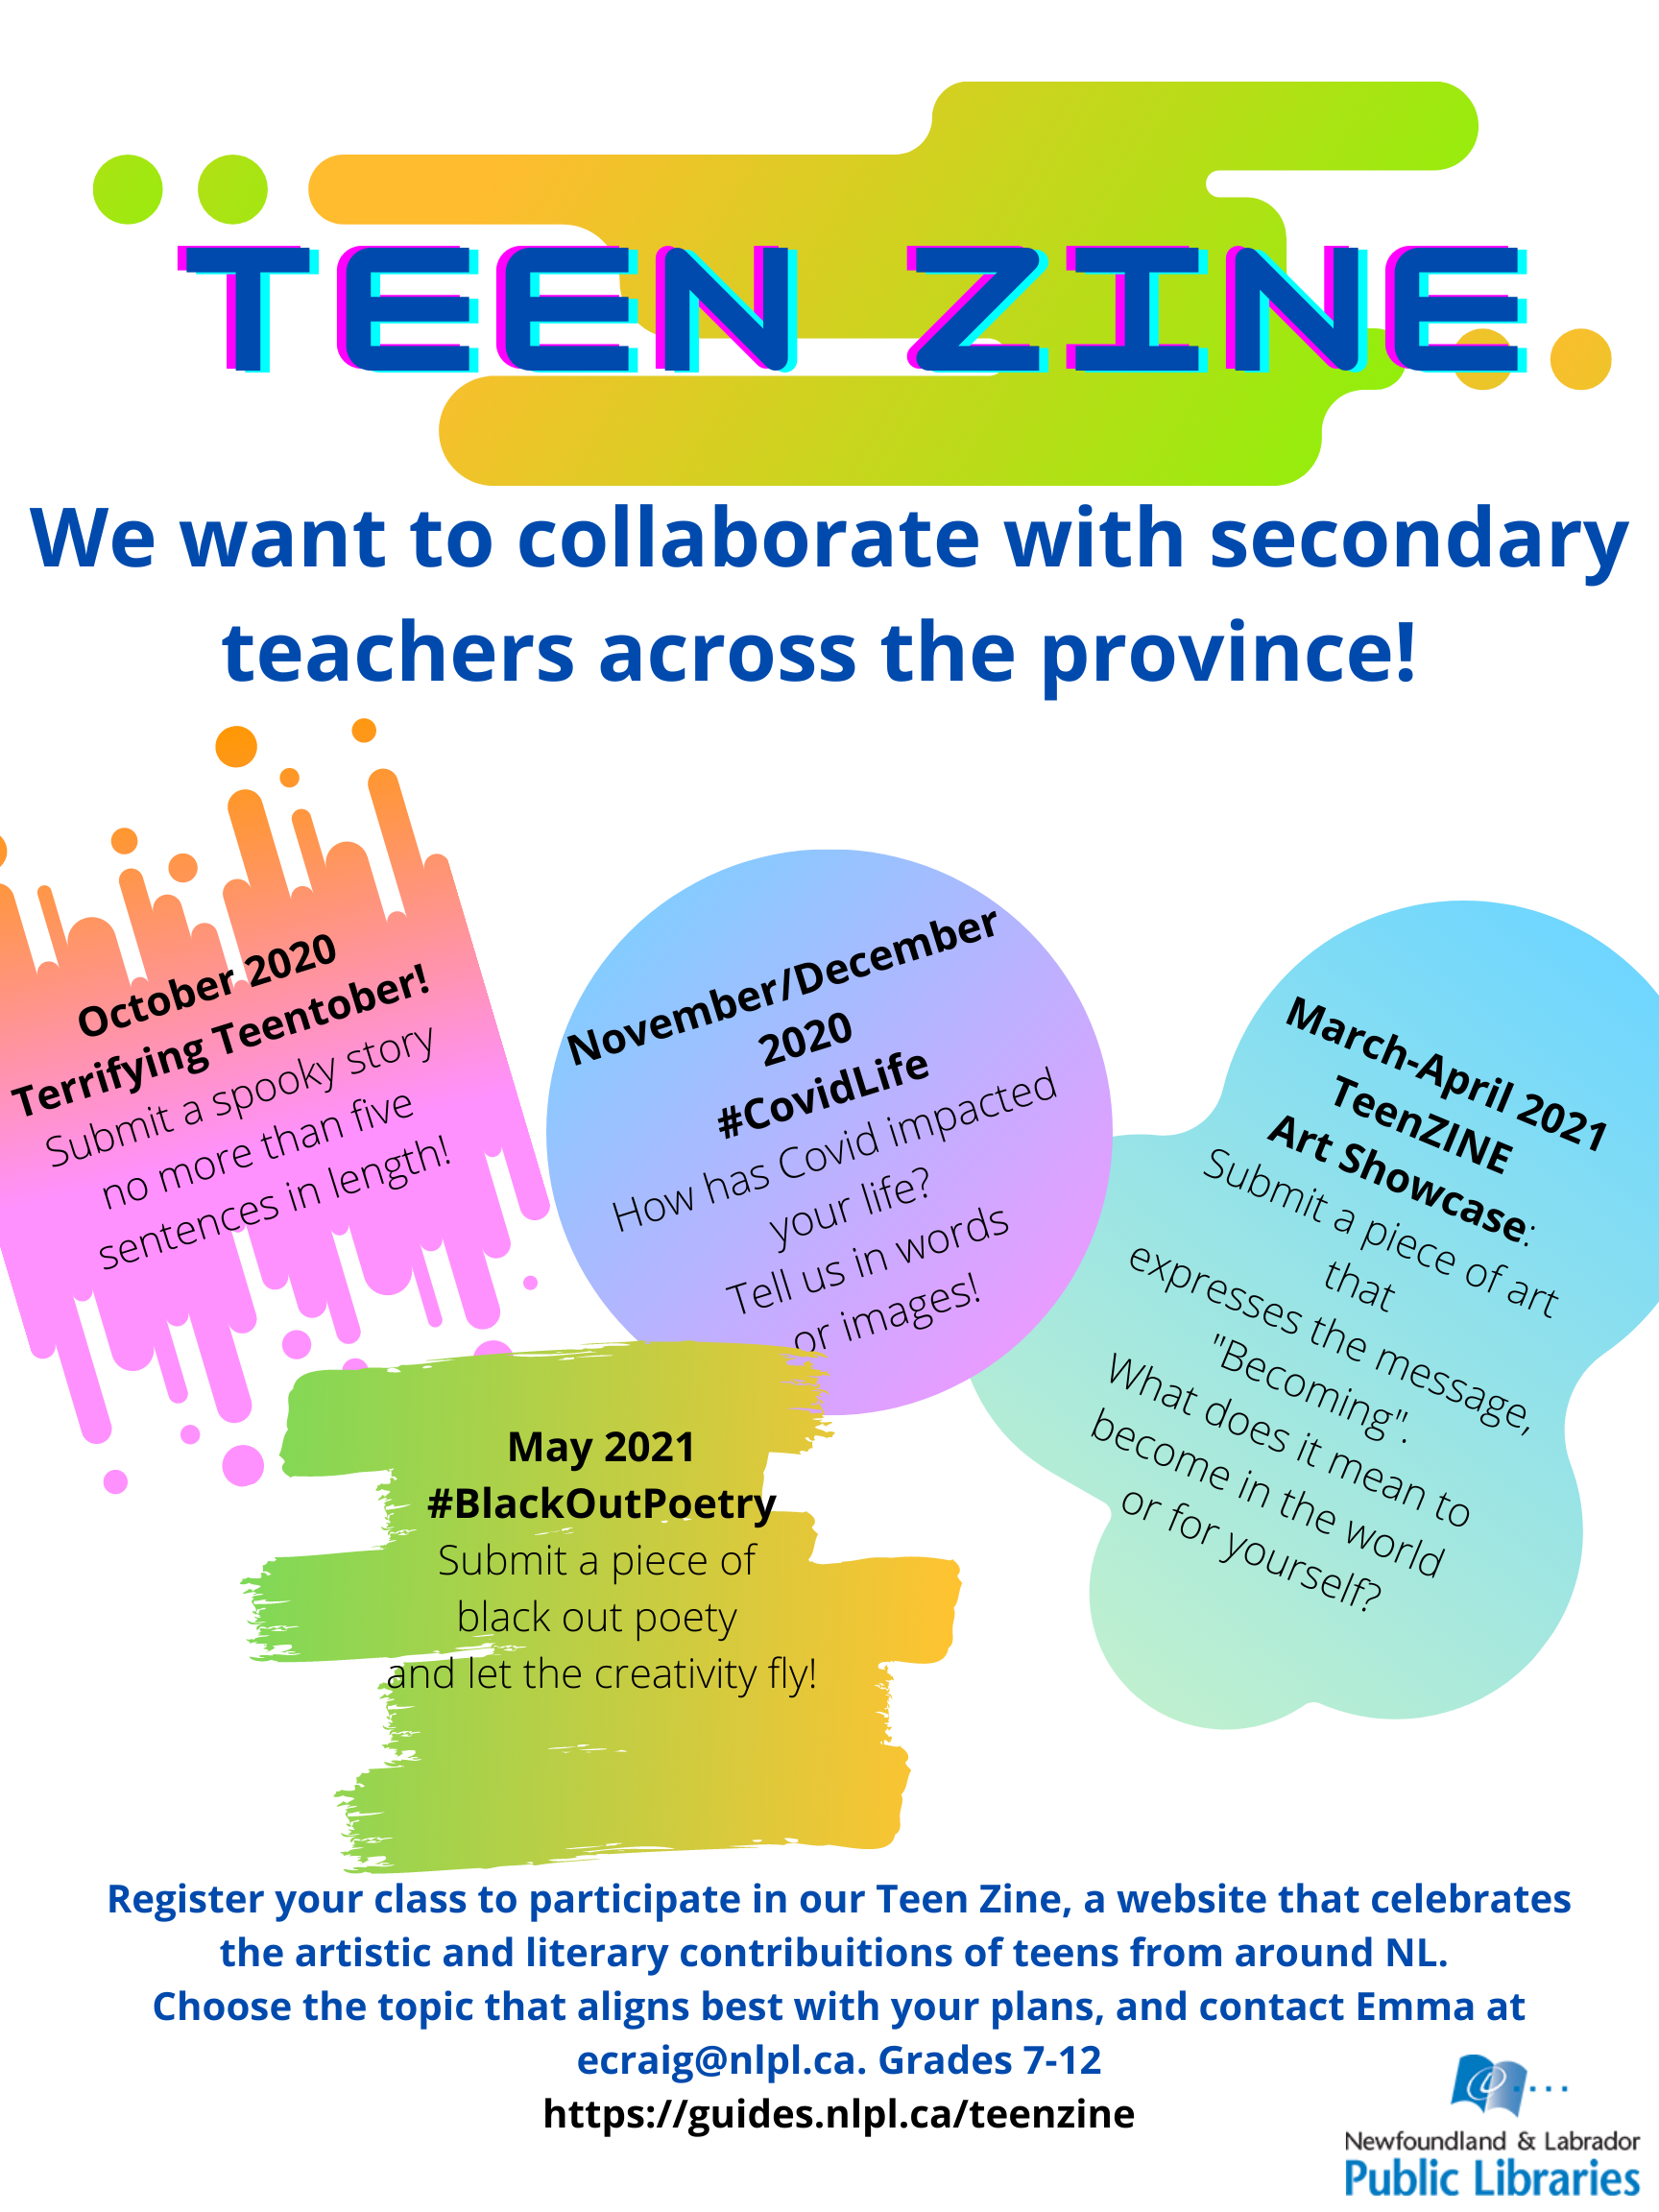 """Teen Zine poster: """"Teen Zine: We want to collaborate with secondary teachers across the province!"""""""